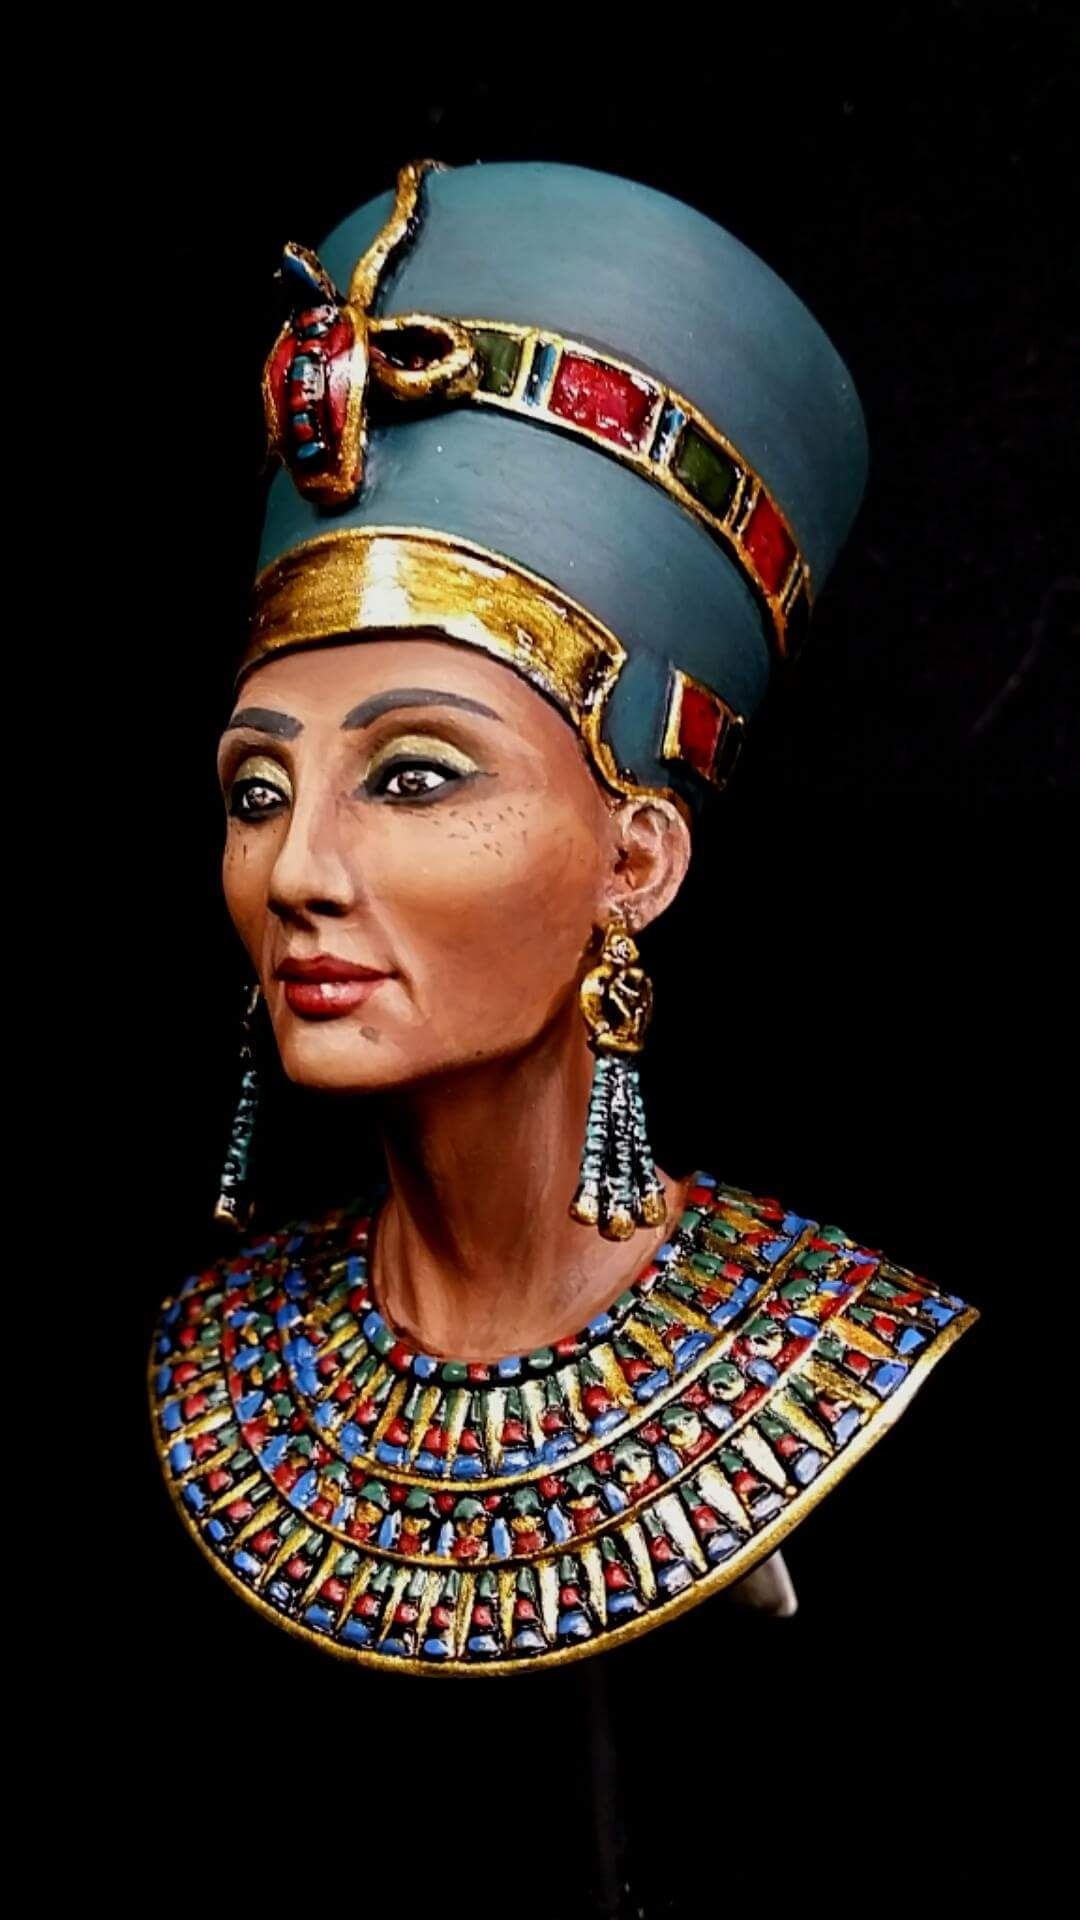 Hd Wallpaper Co Nefertiti By Costas Rodopoulos 183 Putty Amp Paint